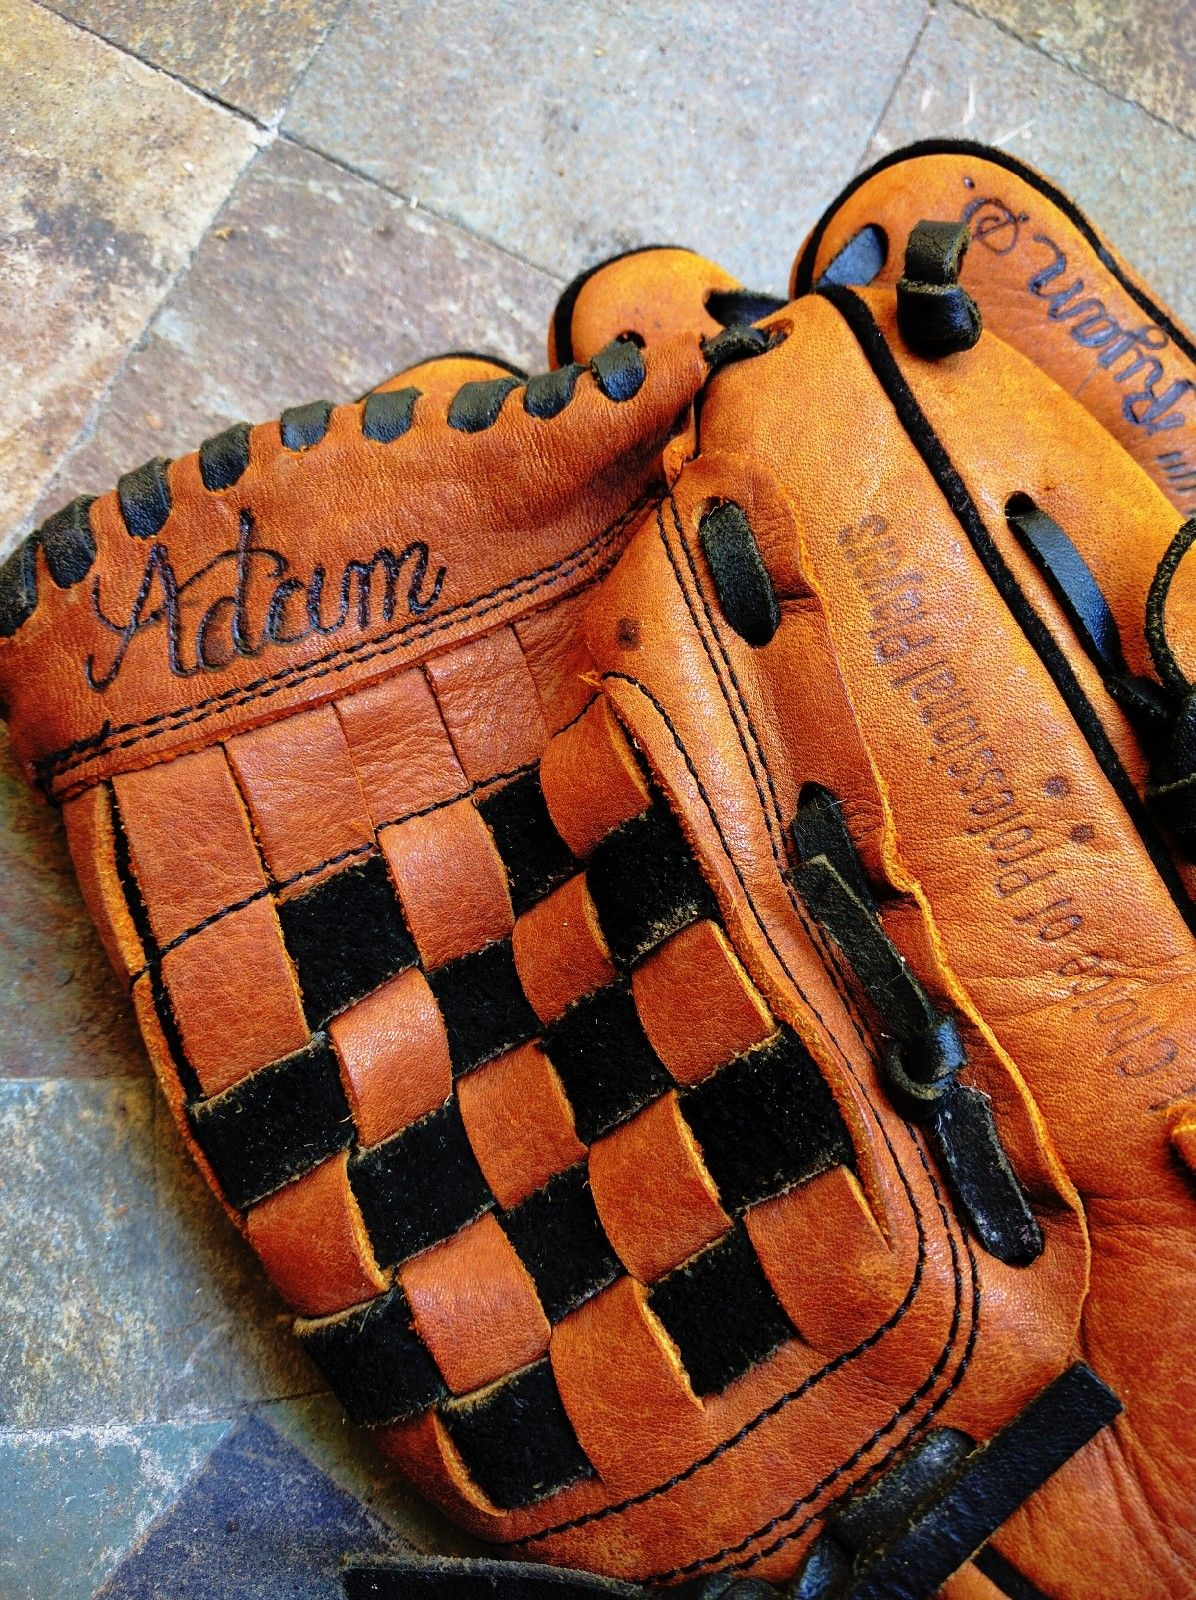 Leather Engraved And Embossed Baseball Mitts Are A Favorite Of Both Kids And Adults Let Us Create A Leather Engraving Baseball Monogram Unique Items Products